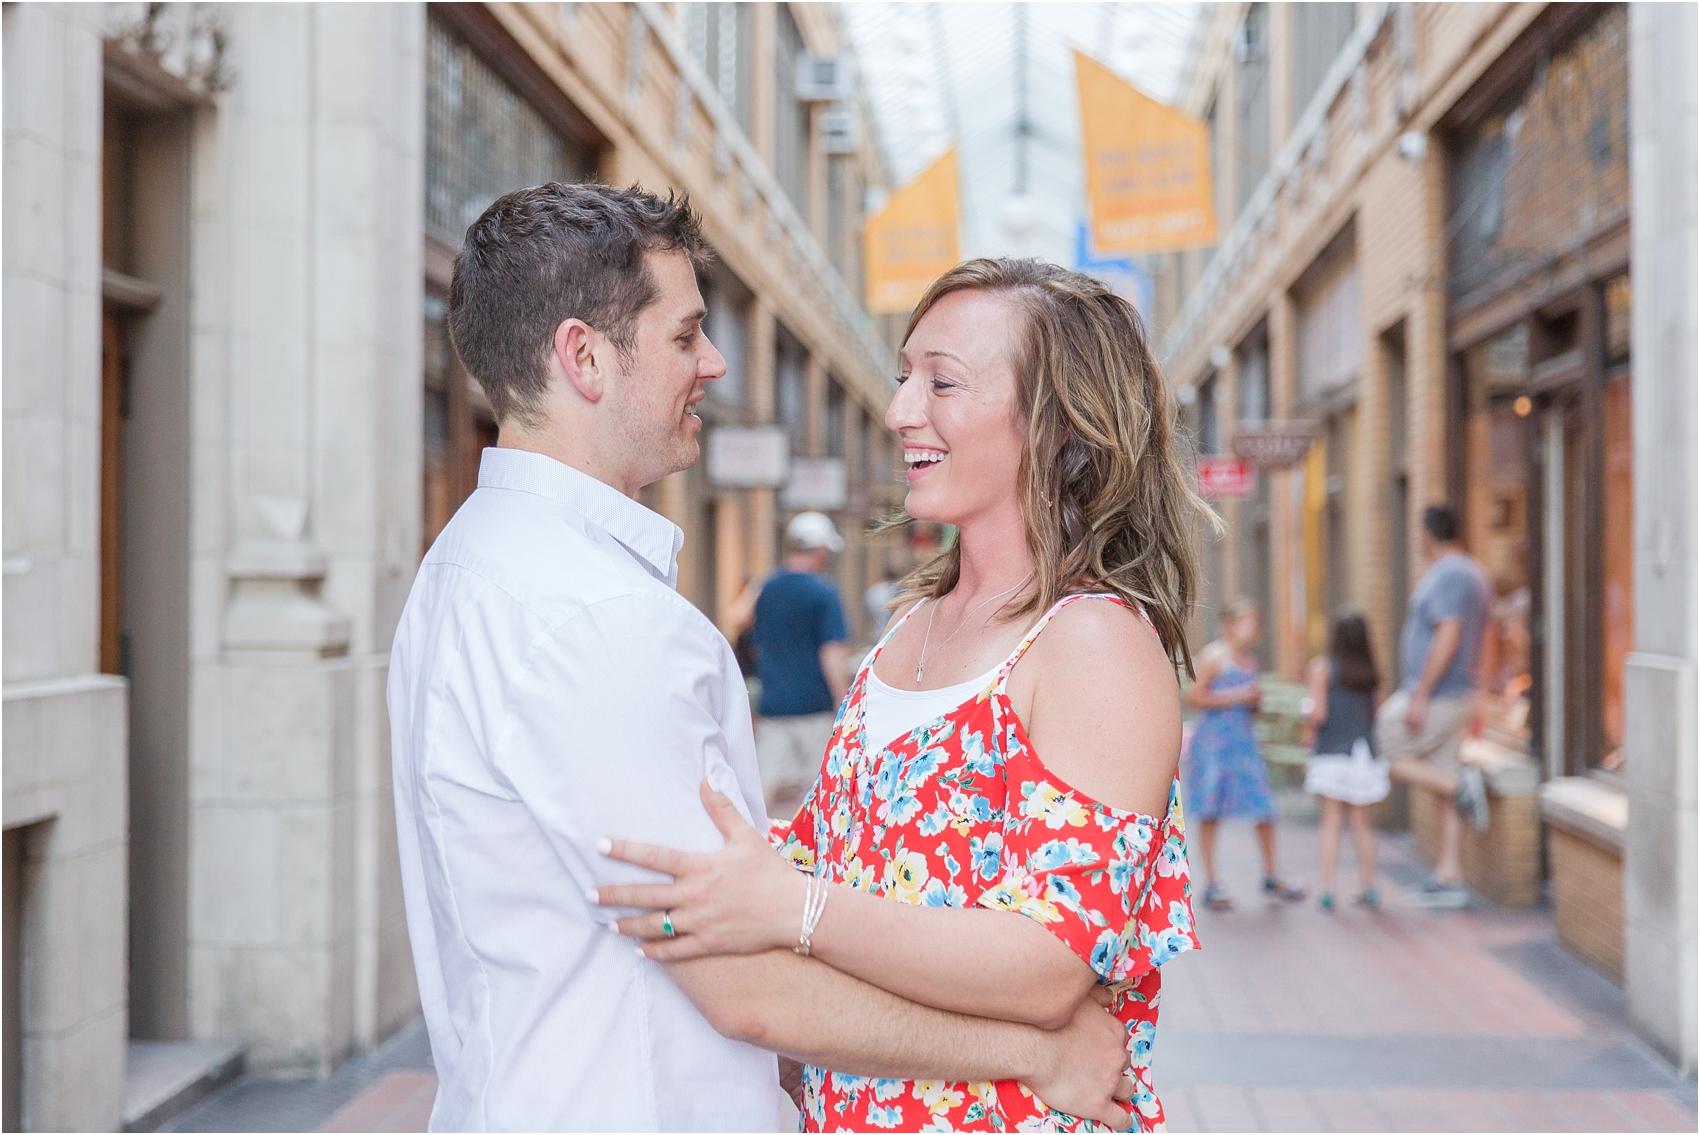 fun-adventurous-engagement-photos-at-the-nickels-arcade-in-ann-arbor-mi-by-courtney-carolyn-photography_0026.jpg